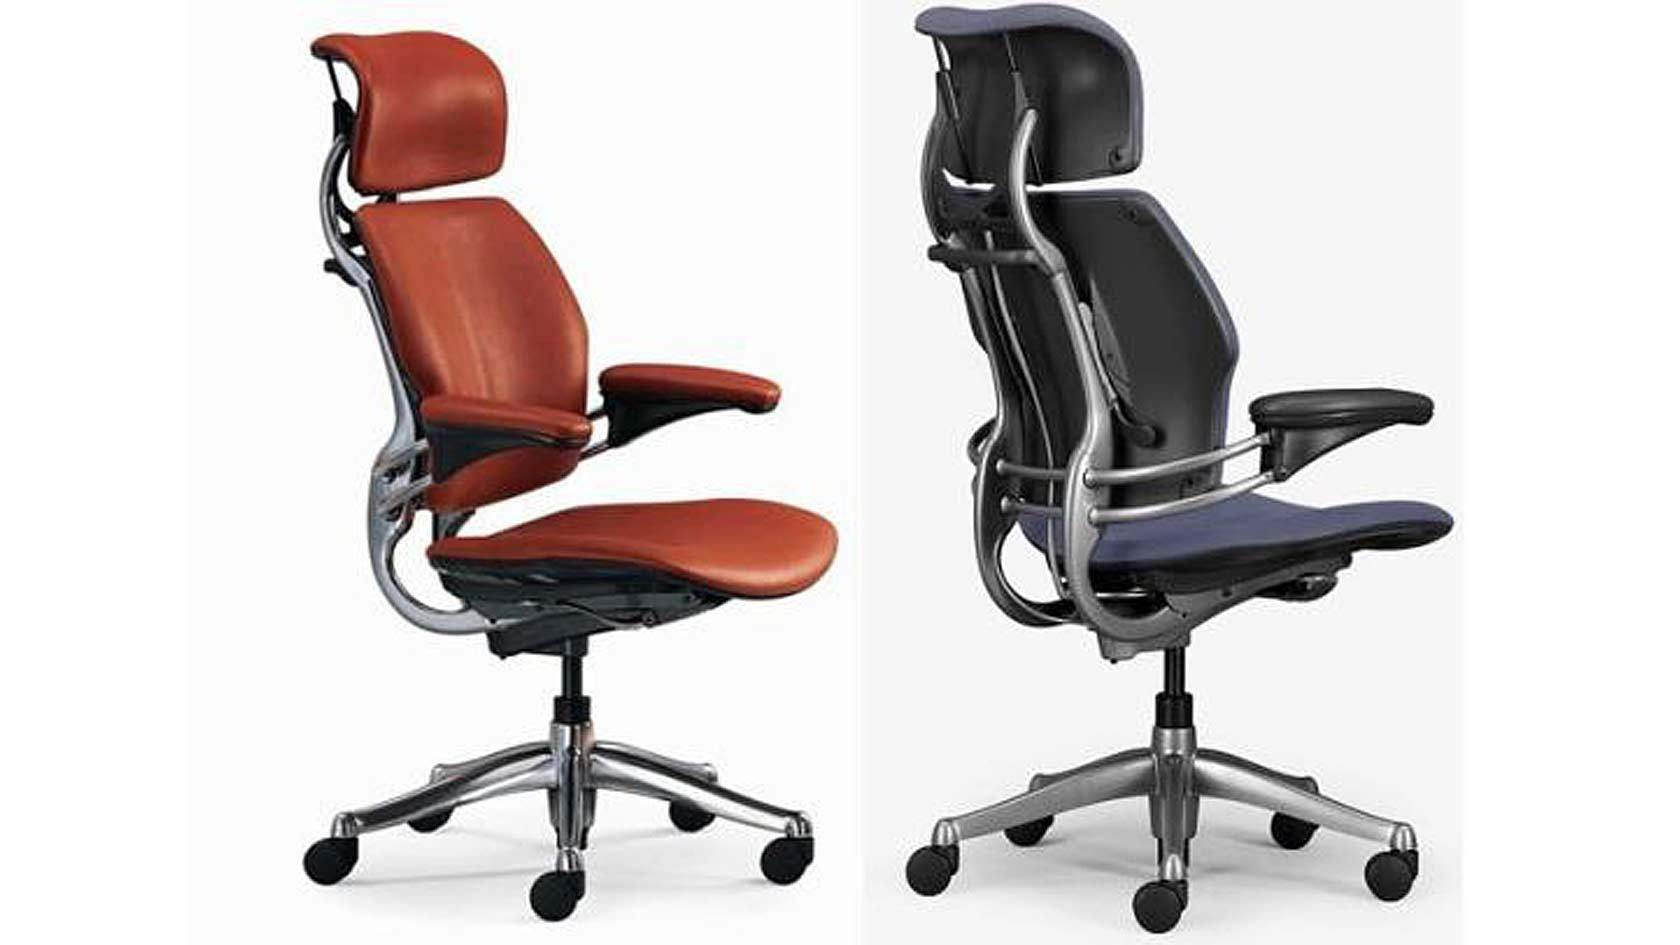 Feeling Like Boss With Human Scale Freedom Chair Best Office